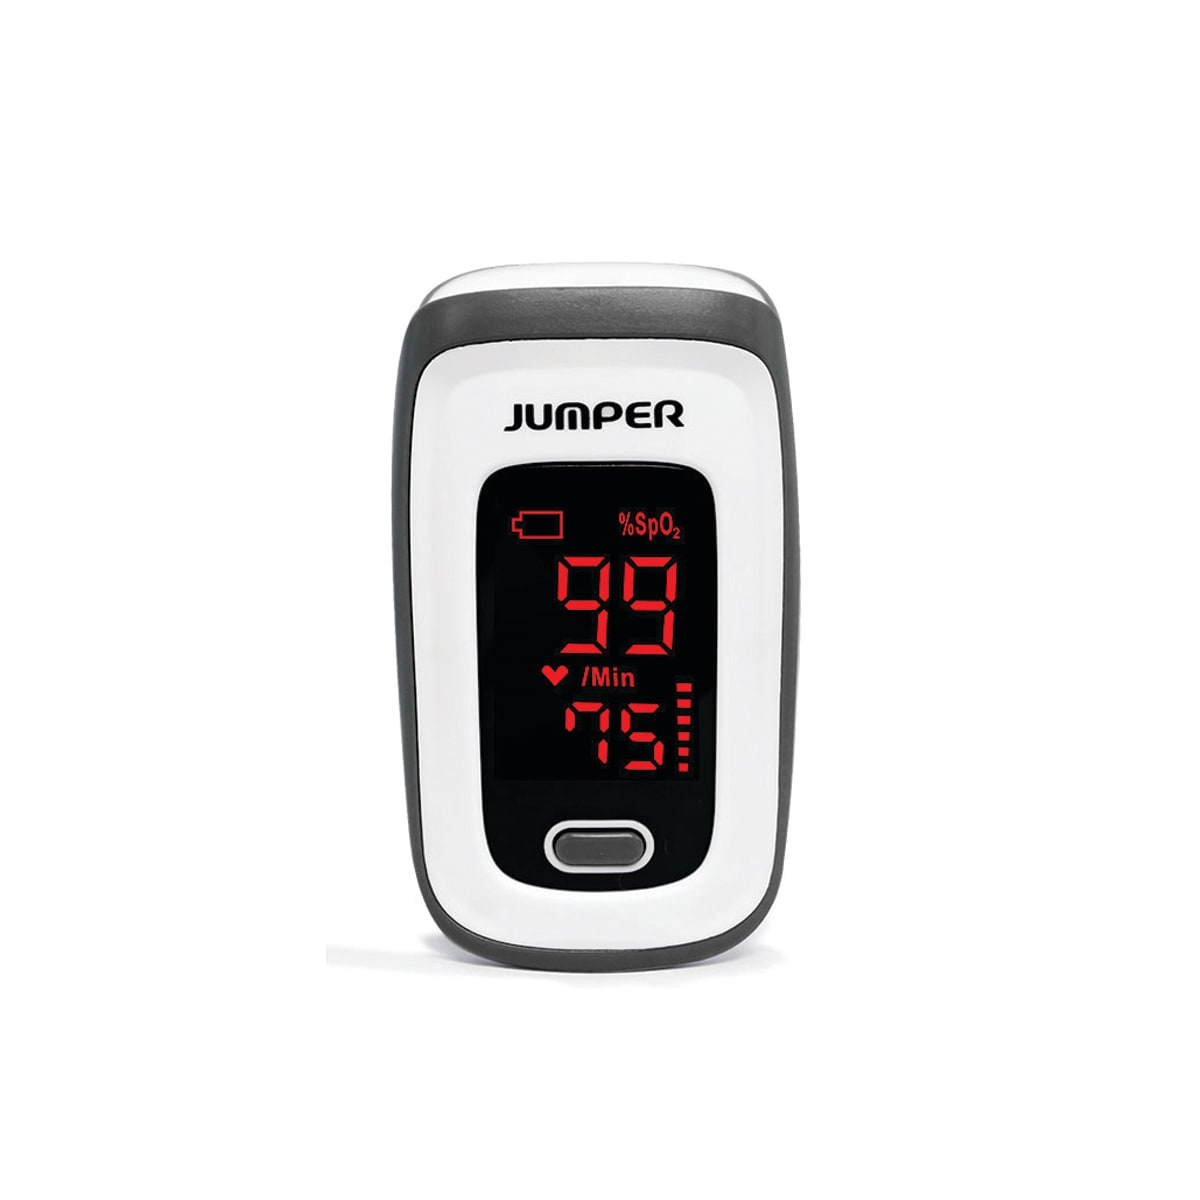 Pulse Oximeter, easy to use and reliable, measures concentration of Oxygen and pulse rate, 30+ hours continuous use, includes lanyard and batteries